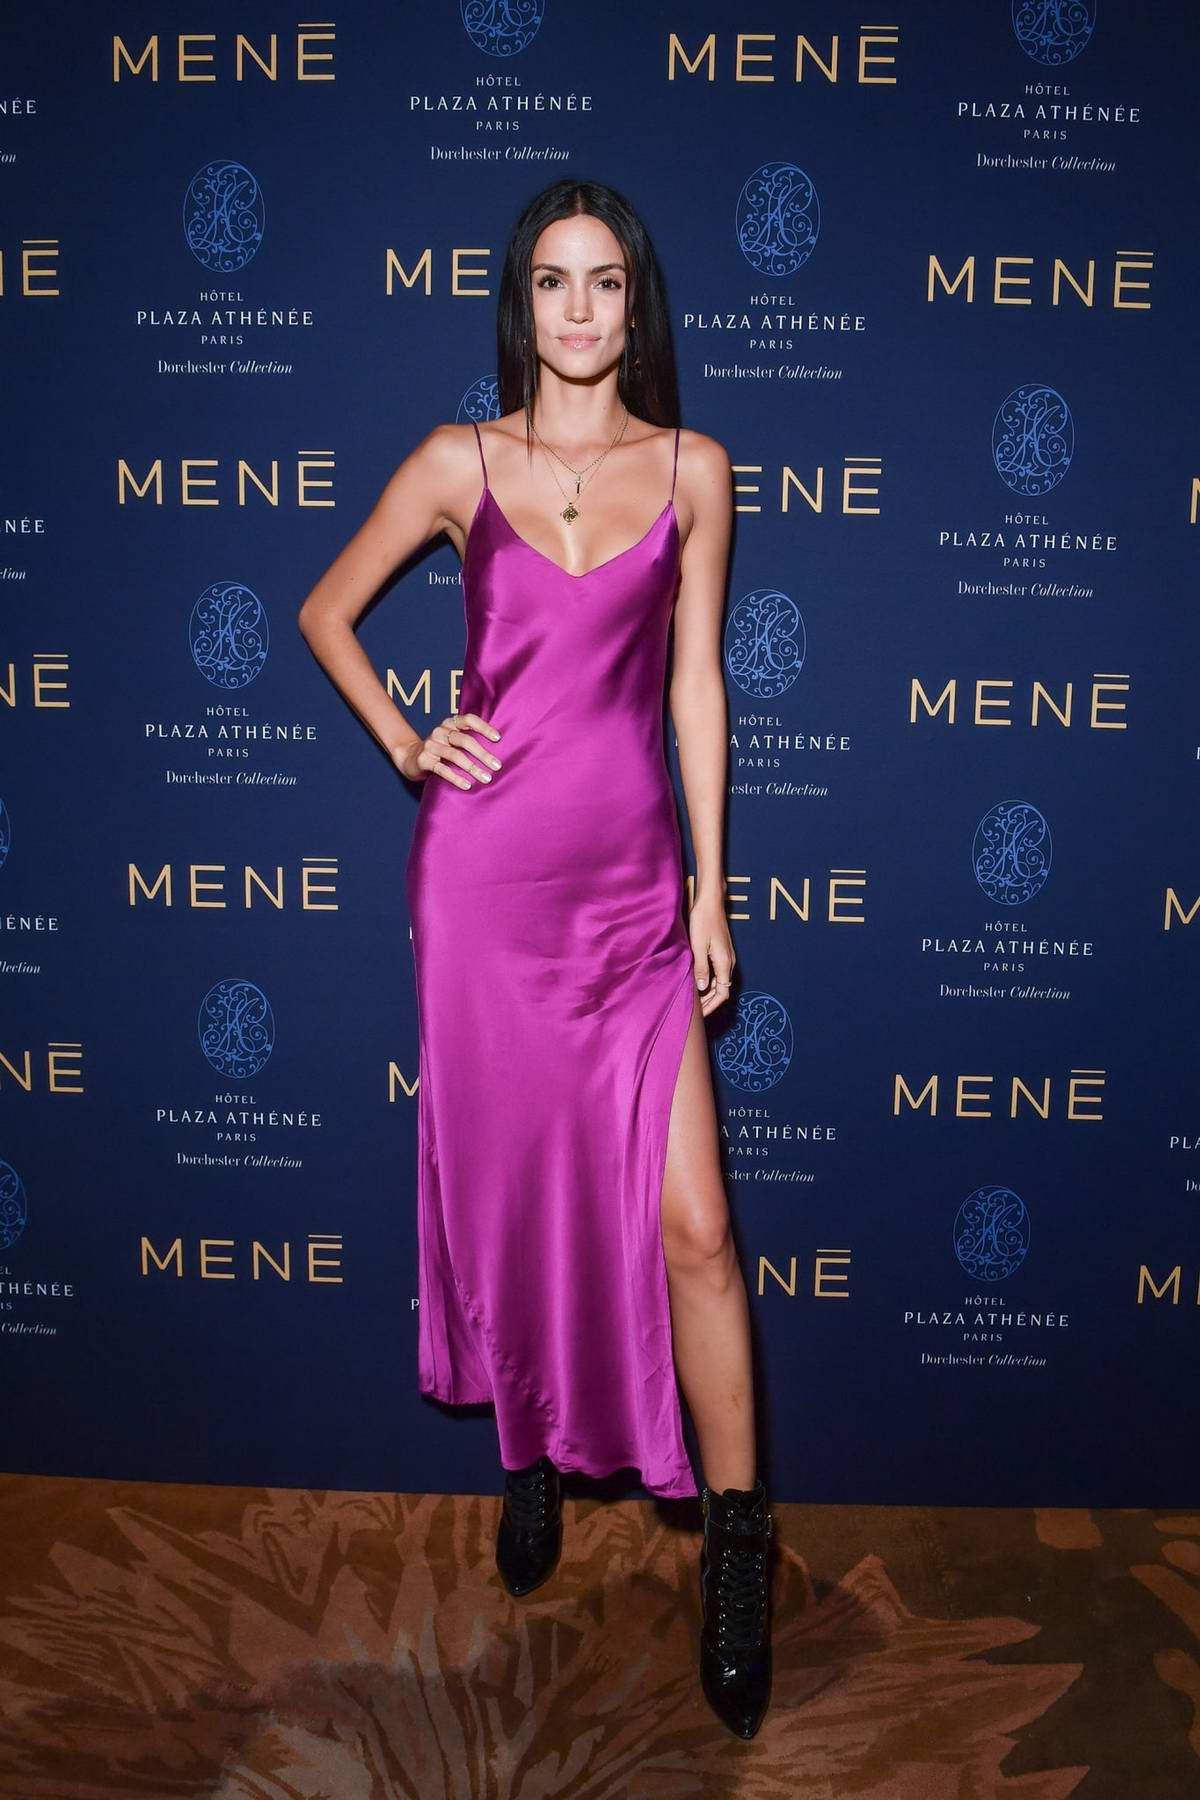 Sofia Resing attends the Mene Cocktail during Paris Fashion Week in Paris, France